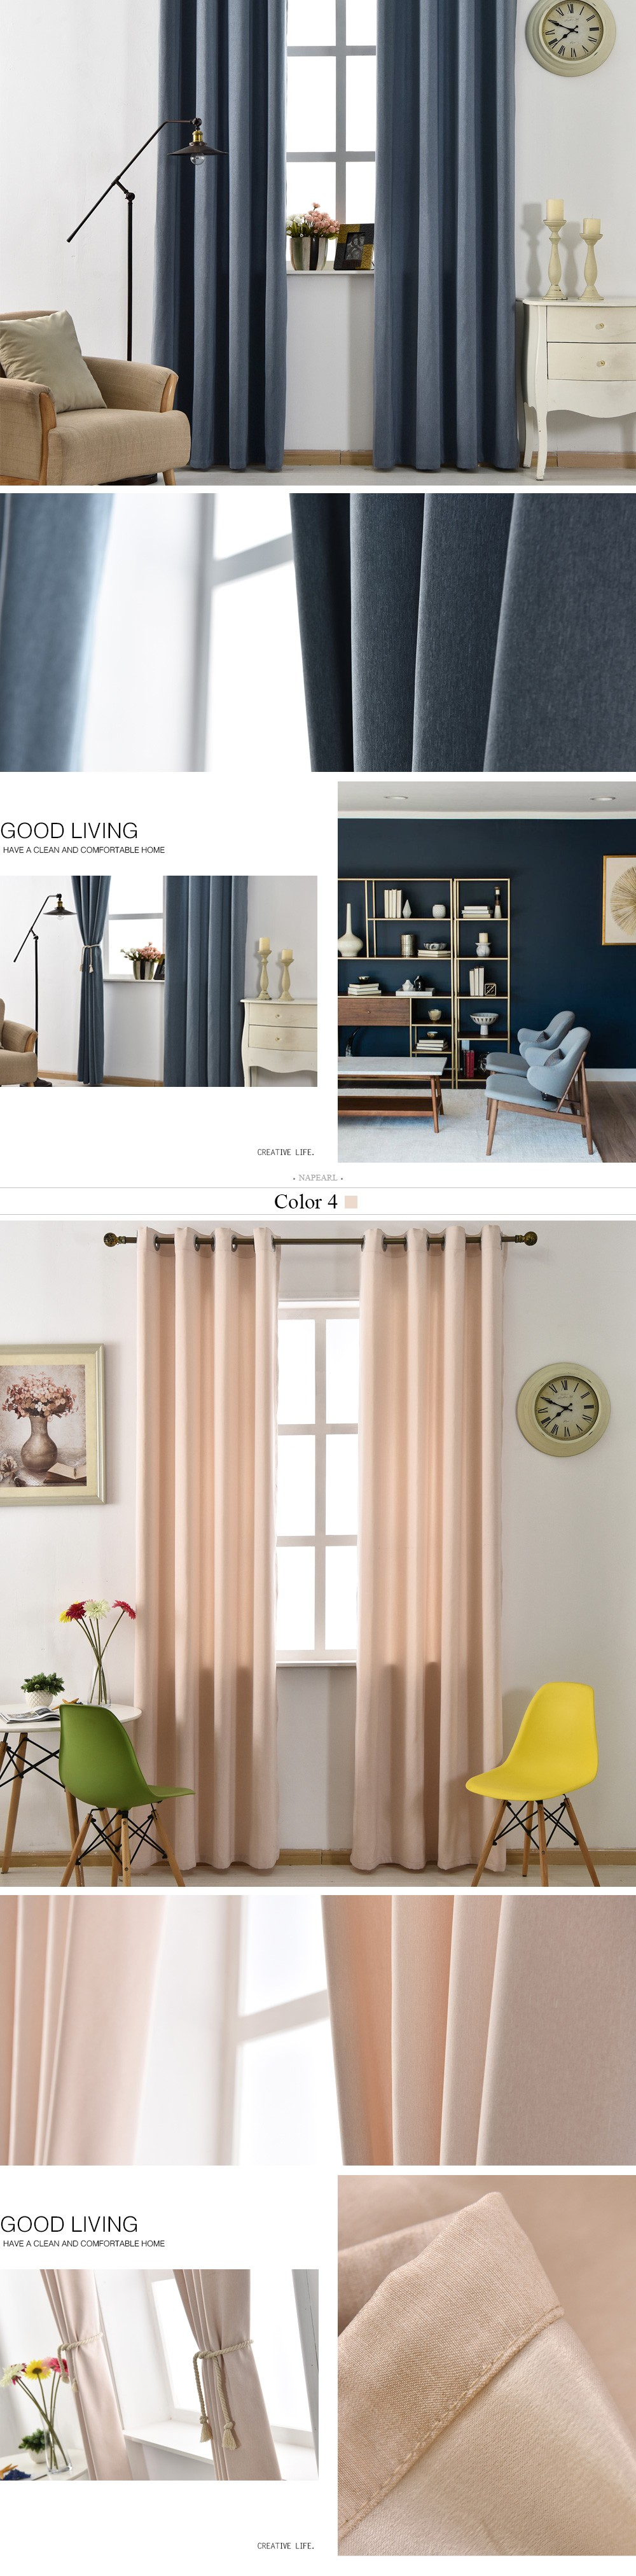 room window color bedroom blackout solid curtains hotel modern treatments living home drapes country and